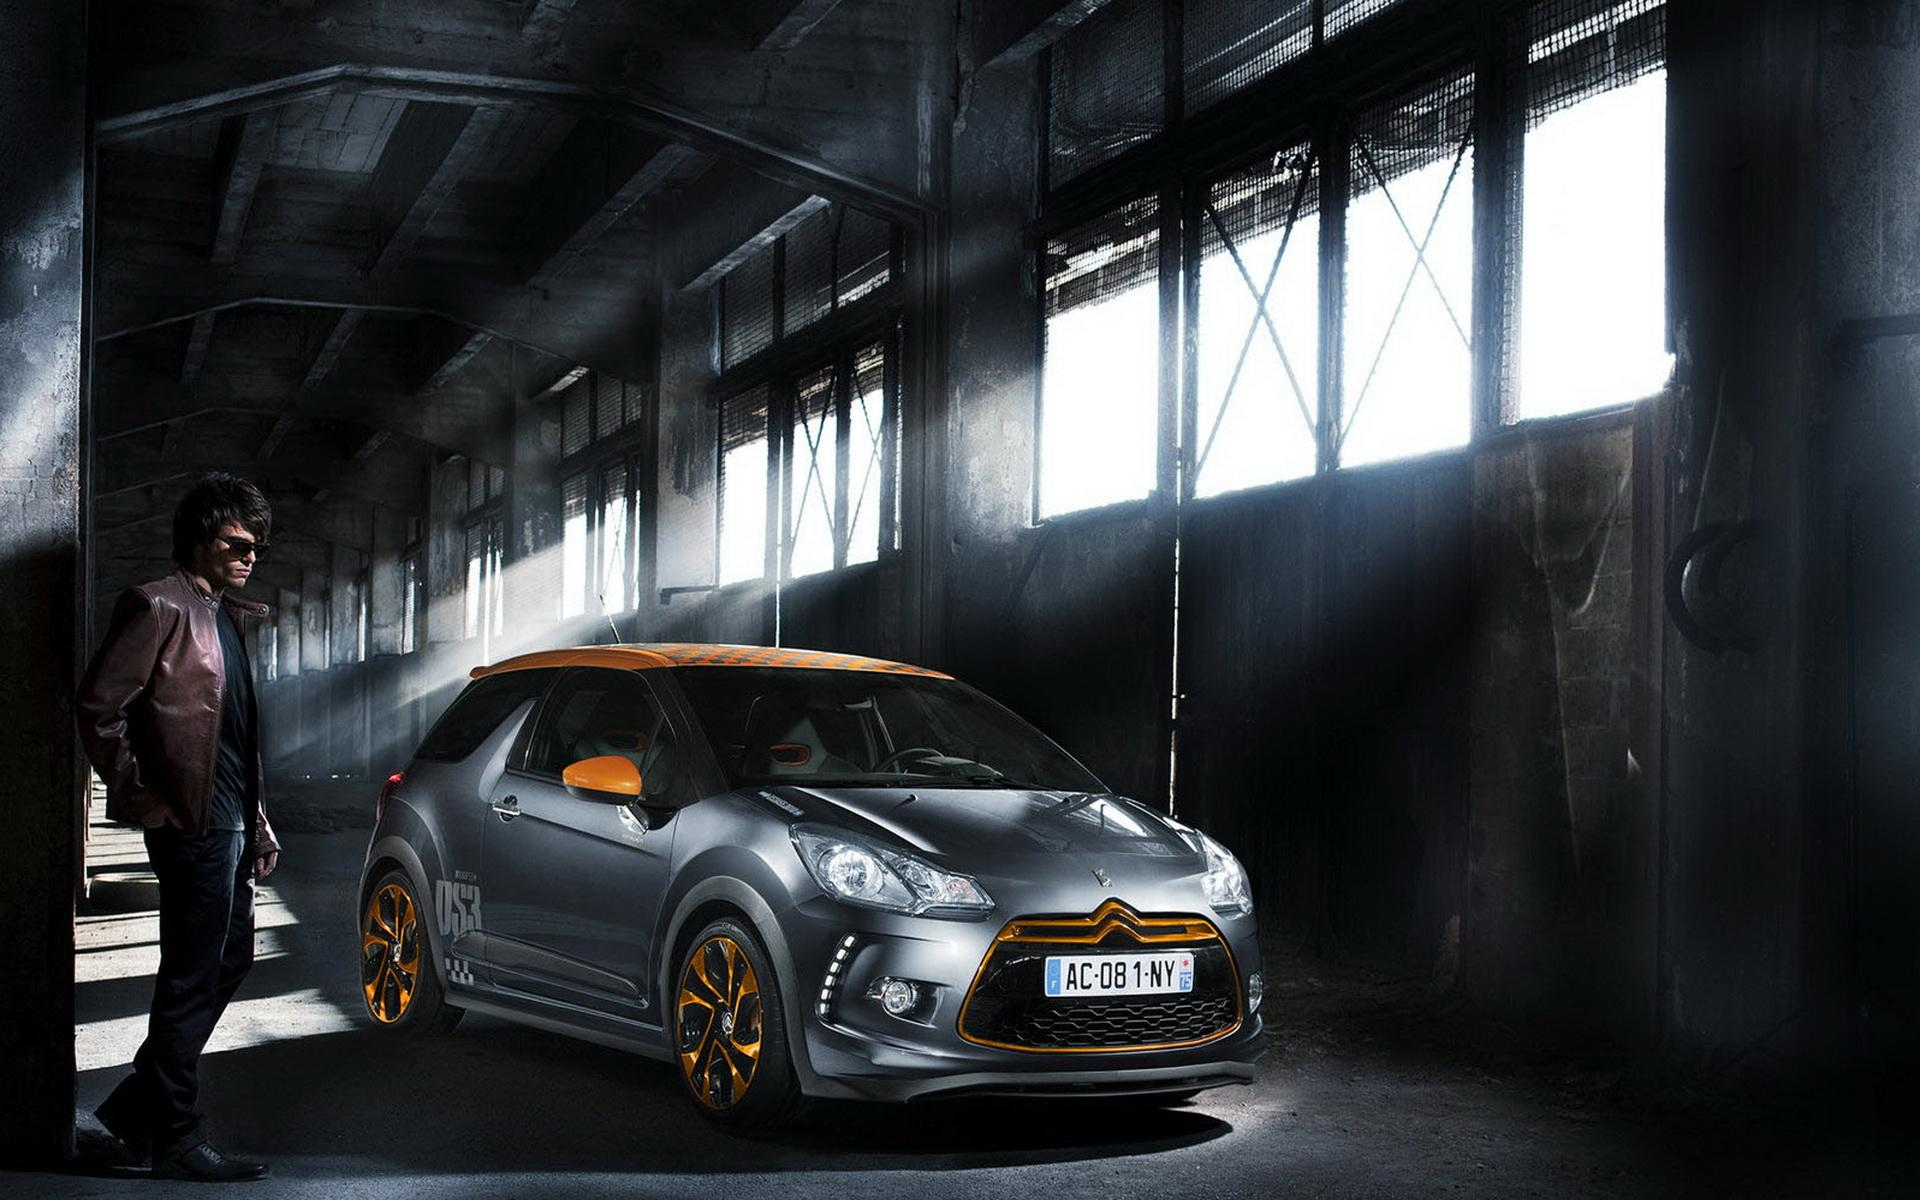 Обои Citroen DS3 Racing в ангаре 1920x1200